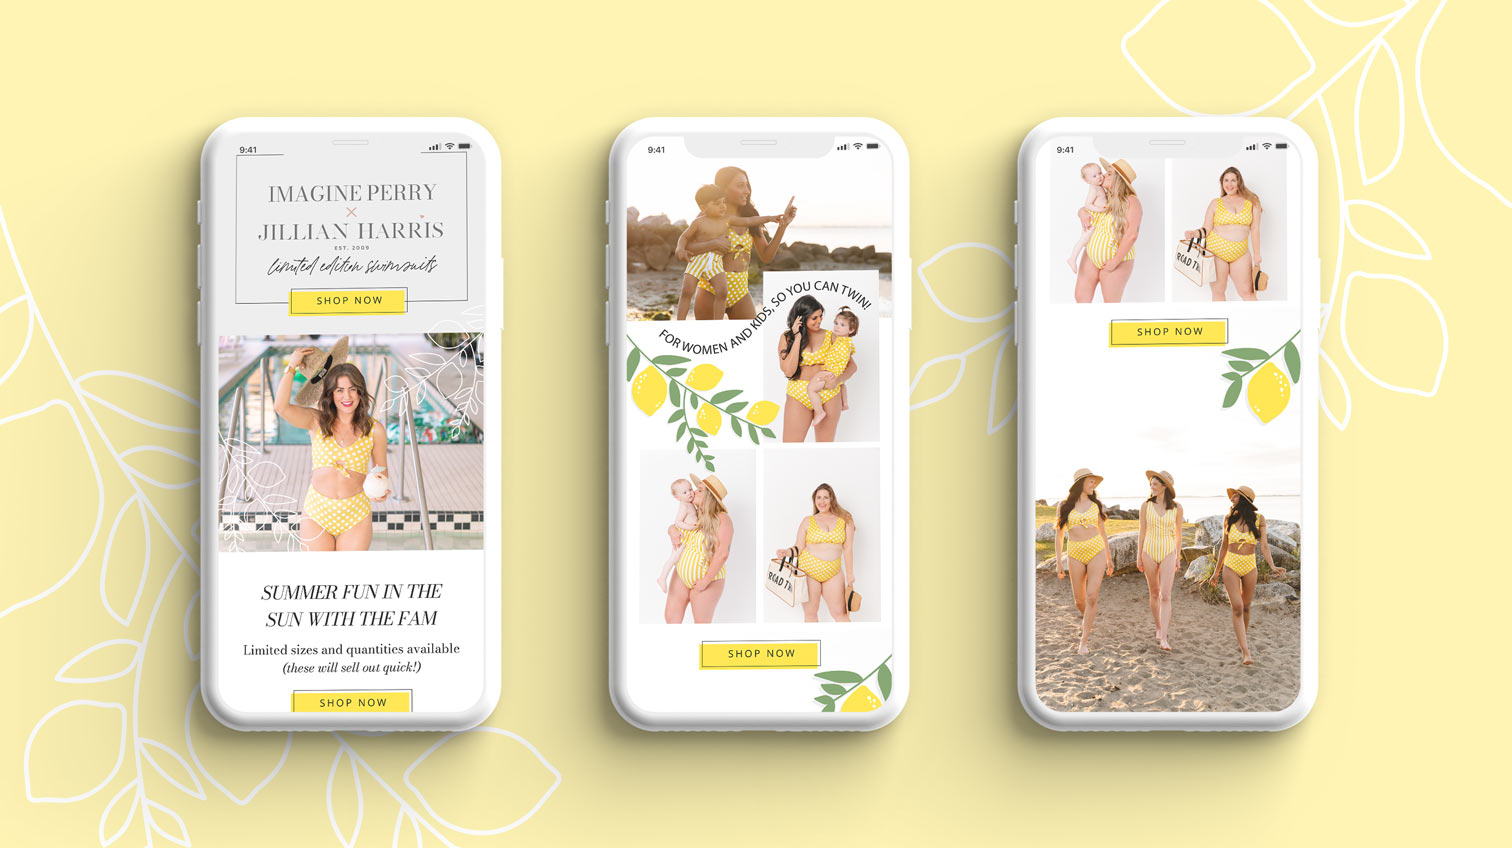 Imagine Perry x Jillian Harris swimsuit collection website on three mobile devices with a yellow background with leaves - White Canvas Design